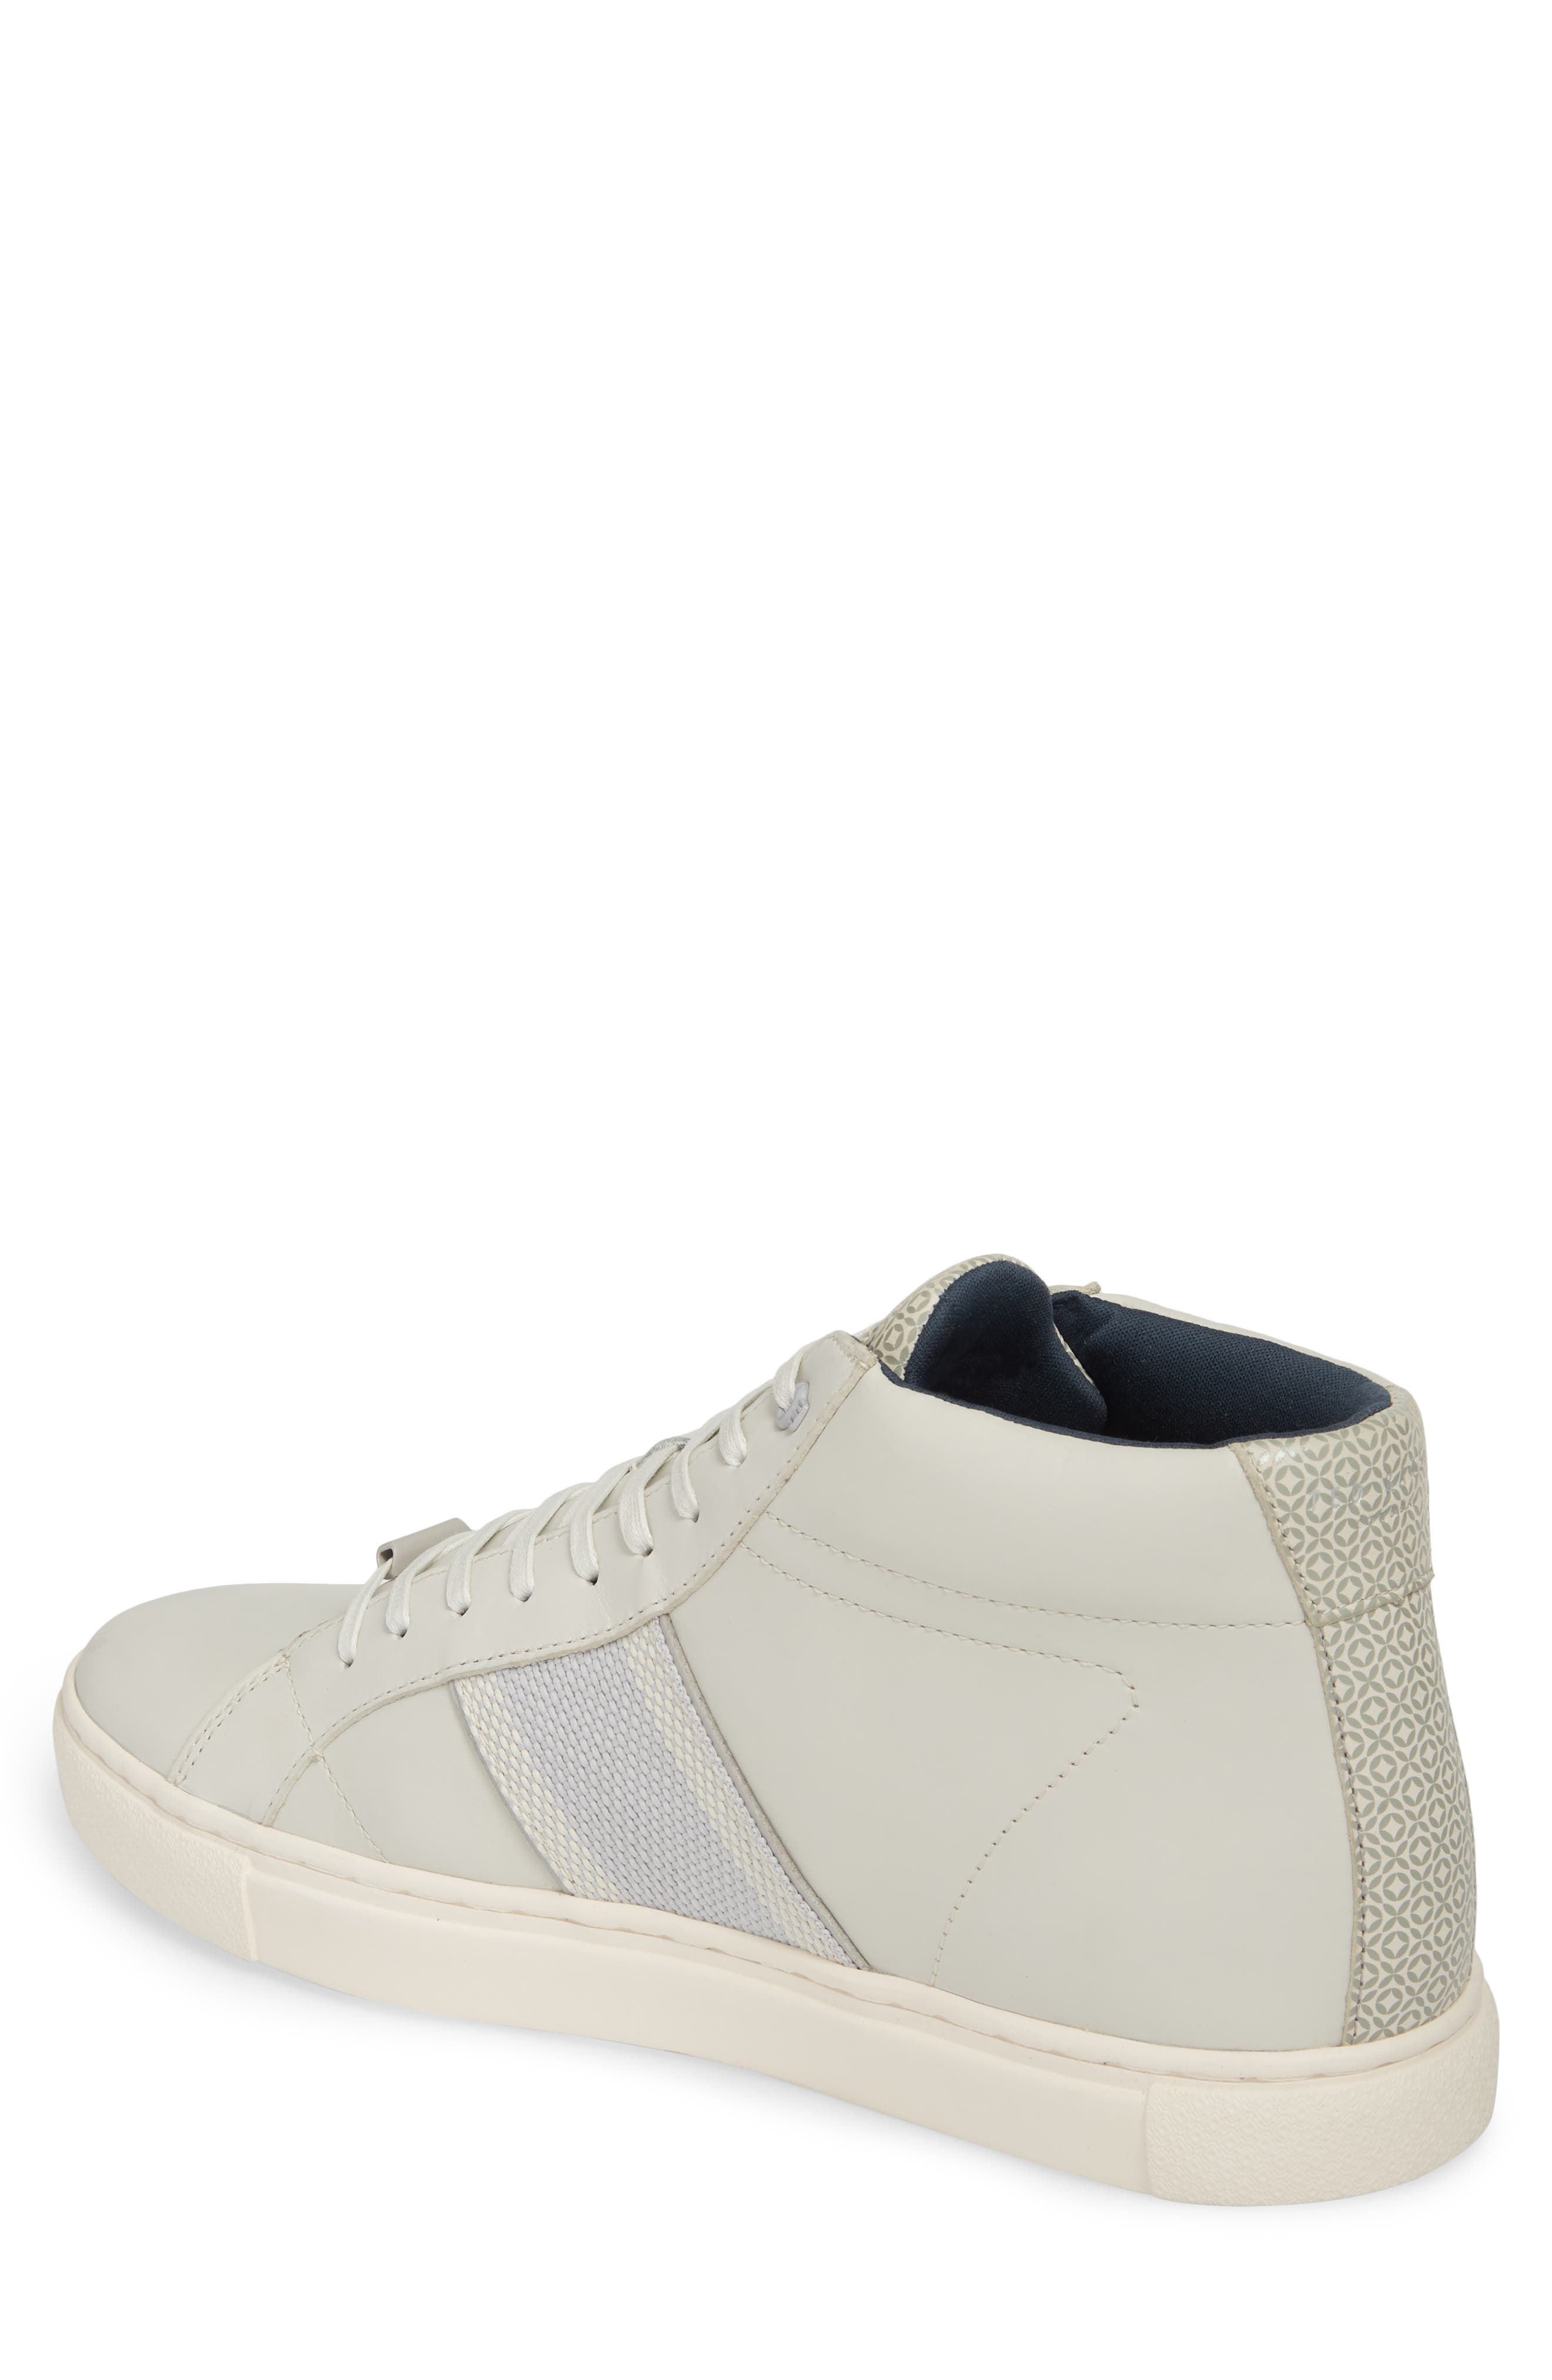 Cruuw High Top Sneaker,                             Alternate thumbnail 2, color,                             WHITE LEATHER